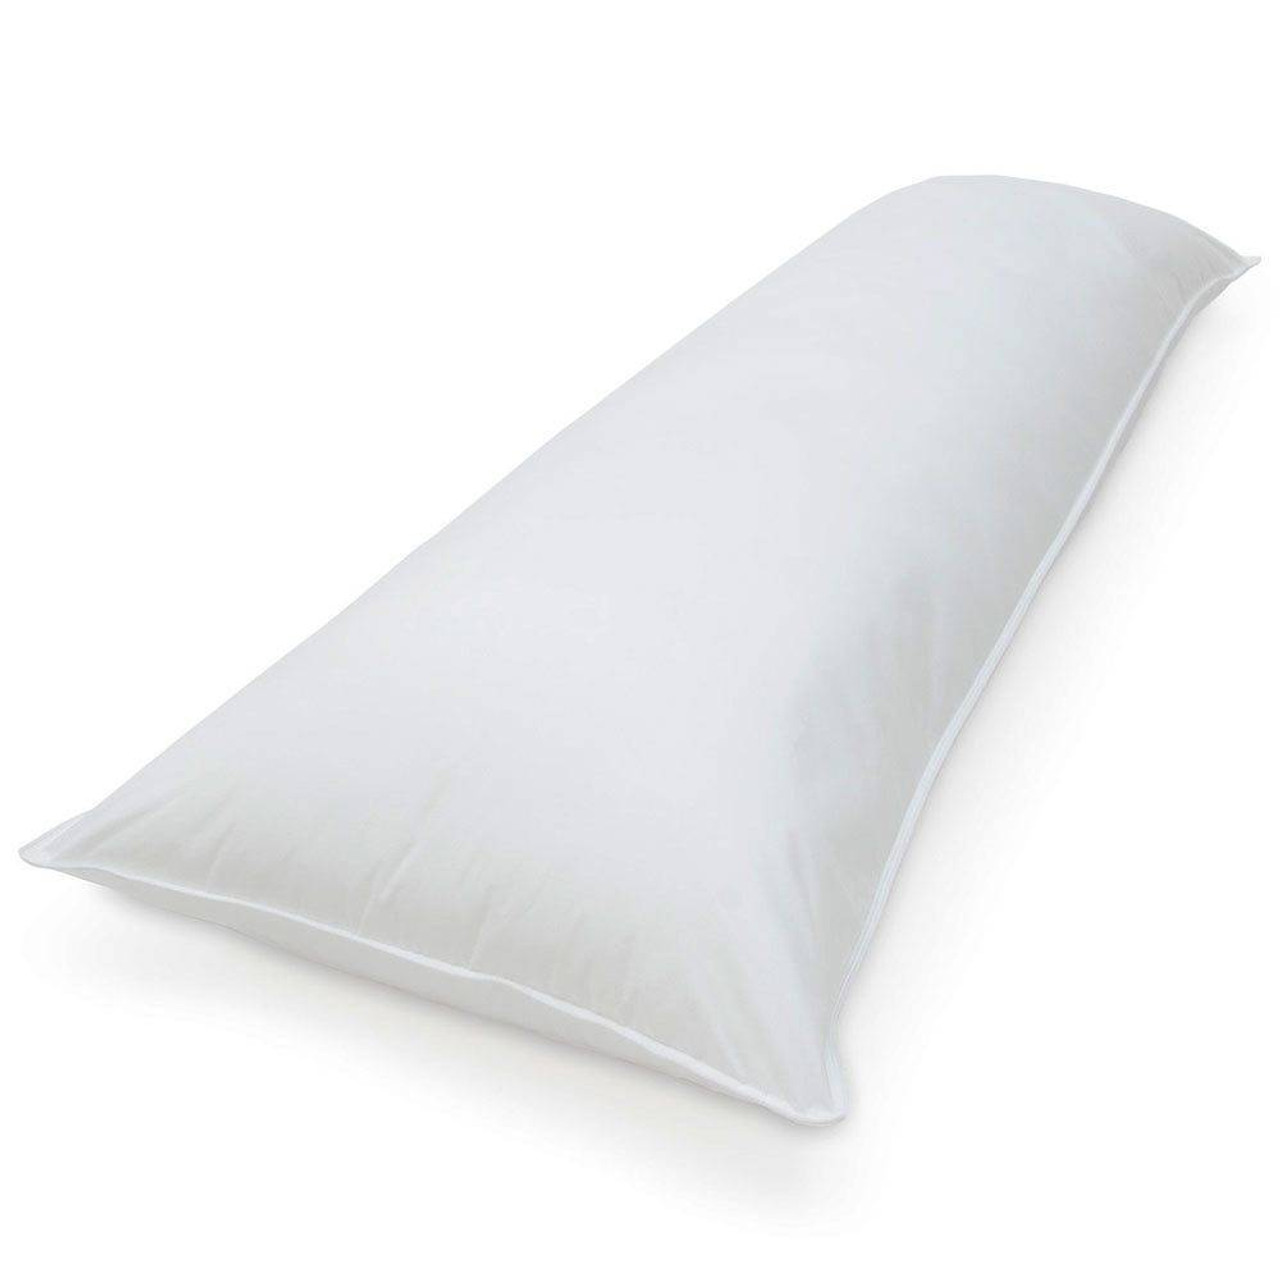 DownLite Bedding DownLIte Pillows or Alternative Body Pillows w/ Envirolite